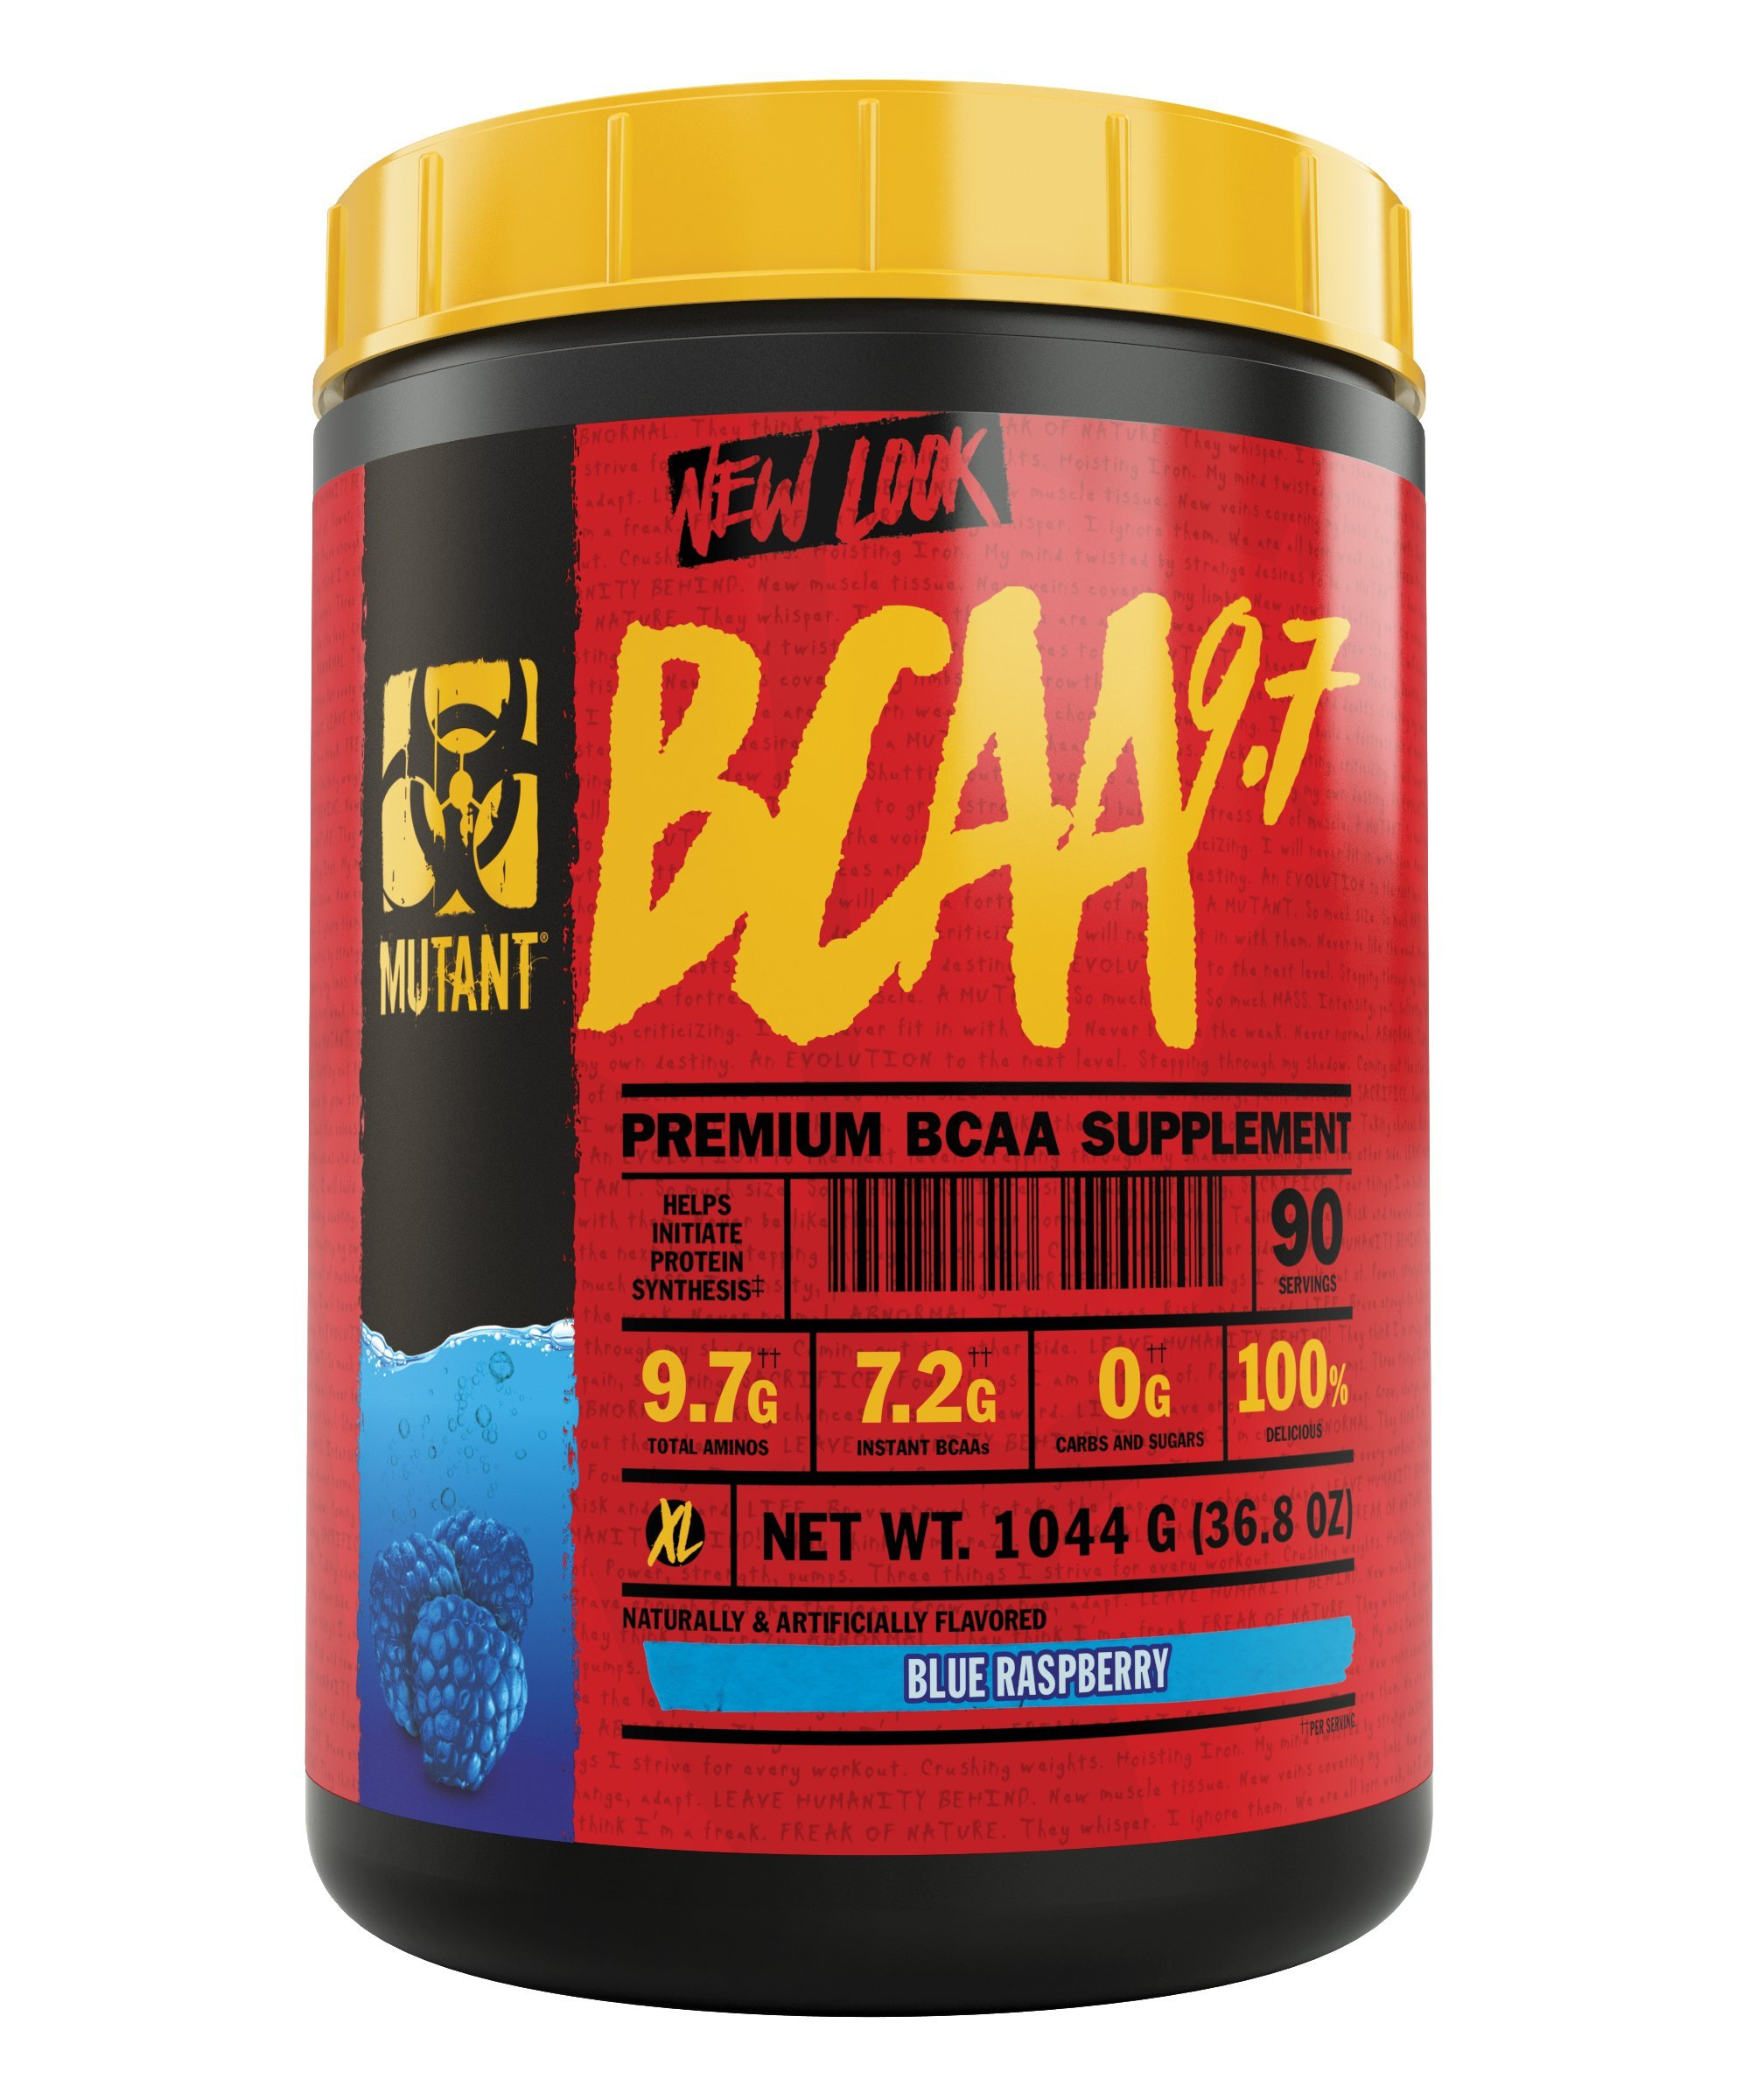 Mutant BCAA 9.7 Supplement BCAA Powder with Micronized Amino Energy Support Stack, 1044g - Blue Raspberry